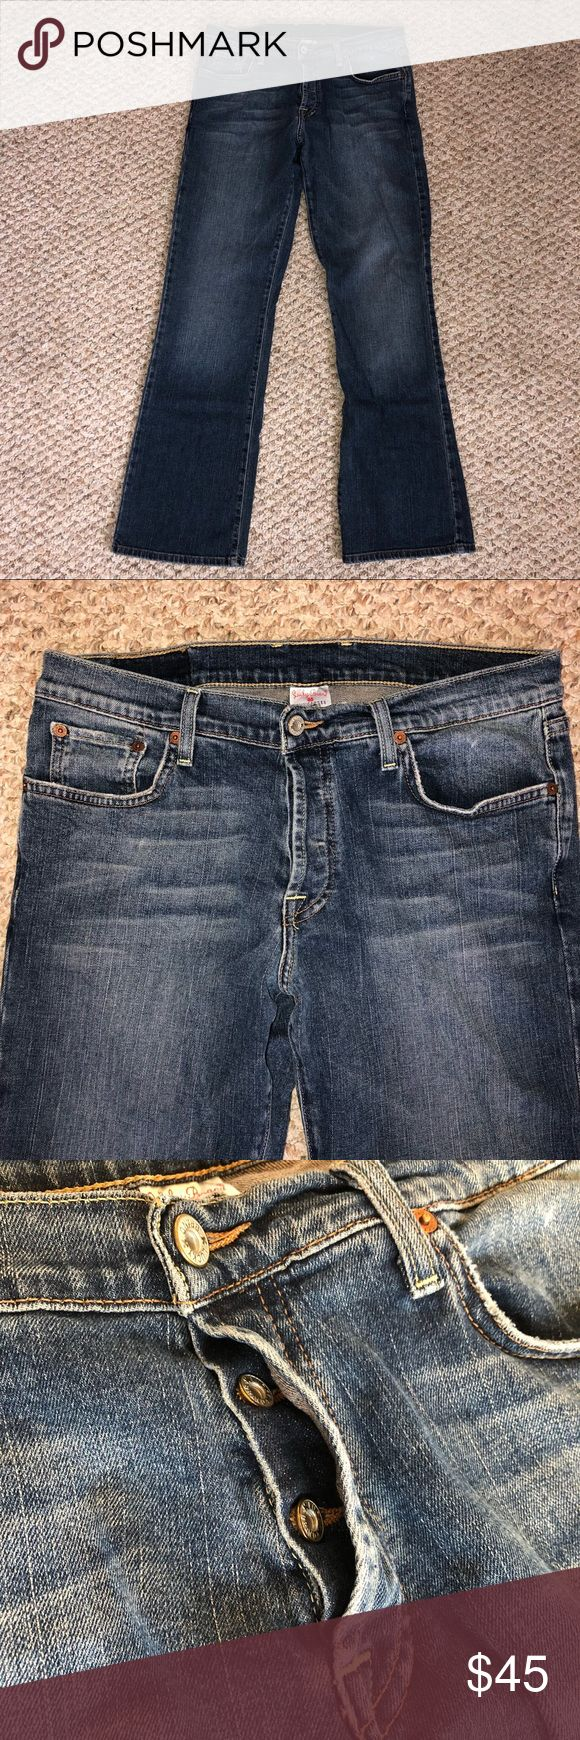 """Men's Lucky Brand 32 Dungarees Slim Bootleg Jeans 🍀 Very good used condition 🍀 Minimal wear/fraying to pocket edges & hems 🍀 Waist 32"""" 🍀 Rise 9-1/2"""" 🍀 Inseam 32"""" 🍀 Leg opening (hem) 19"""" around 🍀 Slim bootleg style 🍀 Light fading & whiskering on the front 🍀 Please ask any questions 🍀 Reasonable offers welcome 🍀 Thanks for visiting my closet! Lucky Brand Jeans Bootcut"""